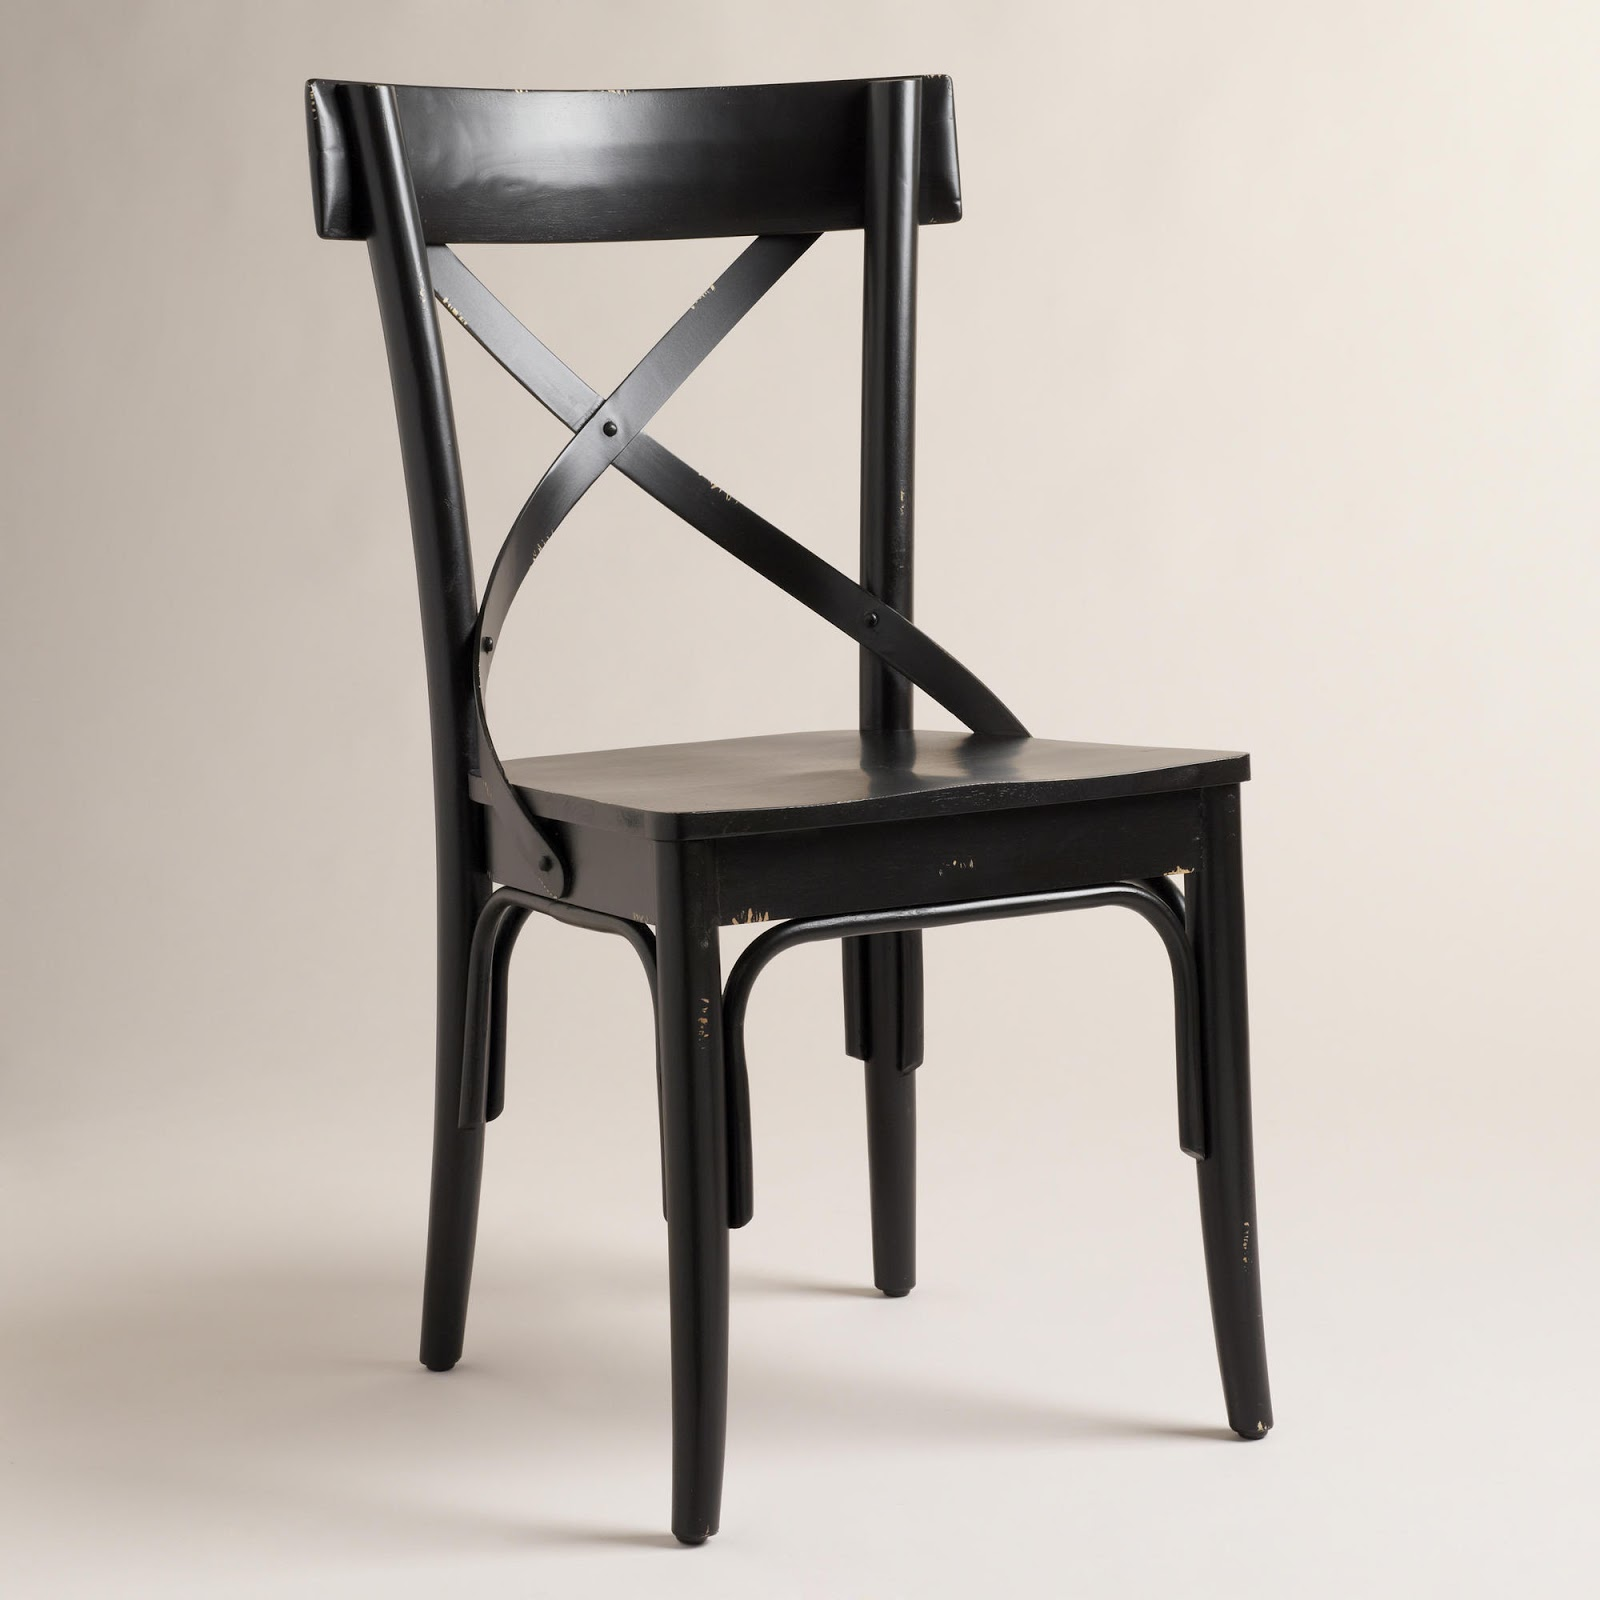 Restoration Hardware Bistro Table Restoration Hardware Dining